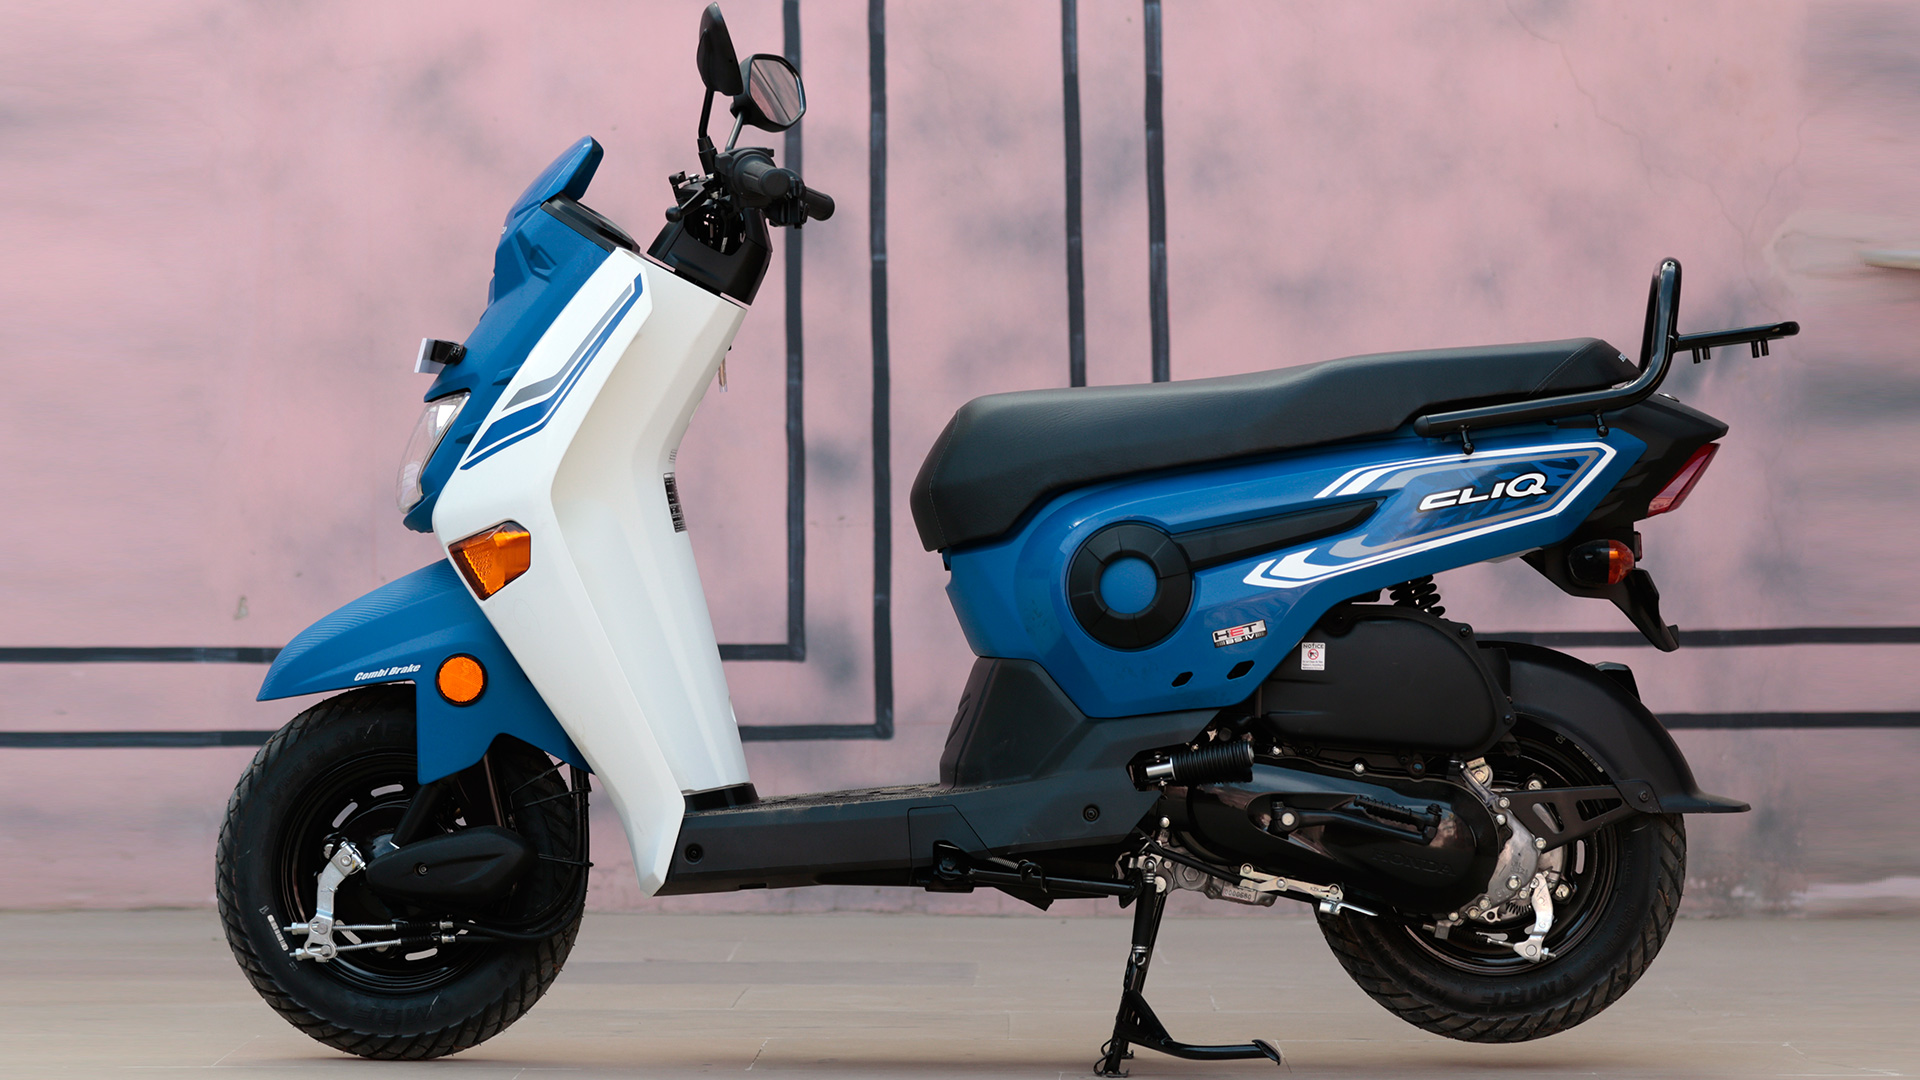 Ray Price Honda >> Honda cliq 2017 - Price, Mileage, Reviews, Specification, Gallery - Overdrive